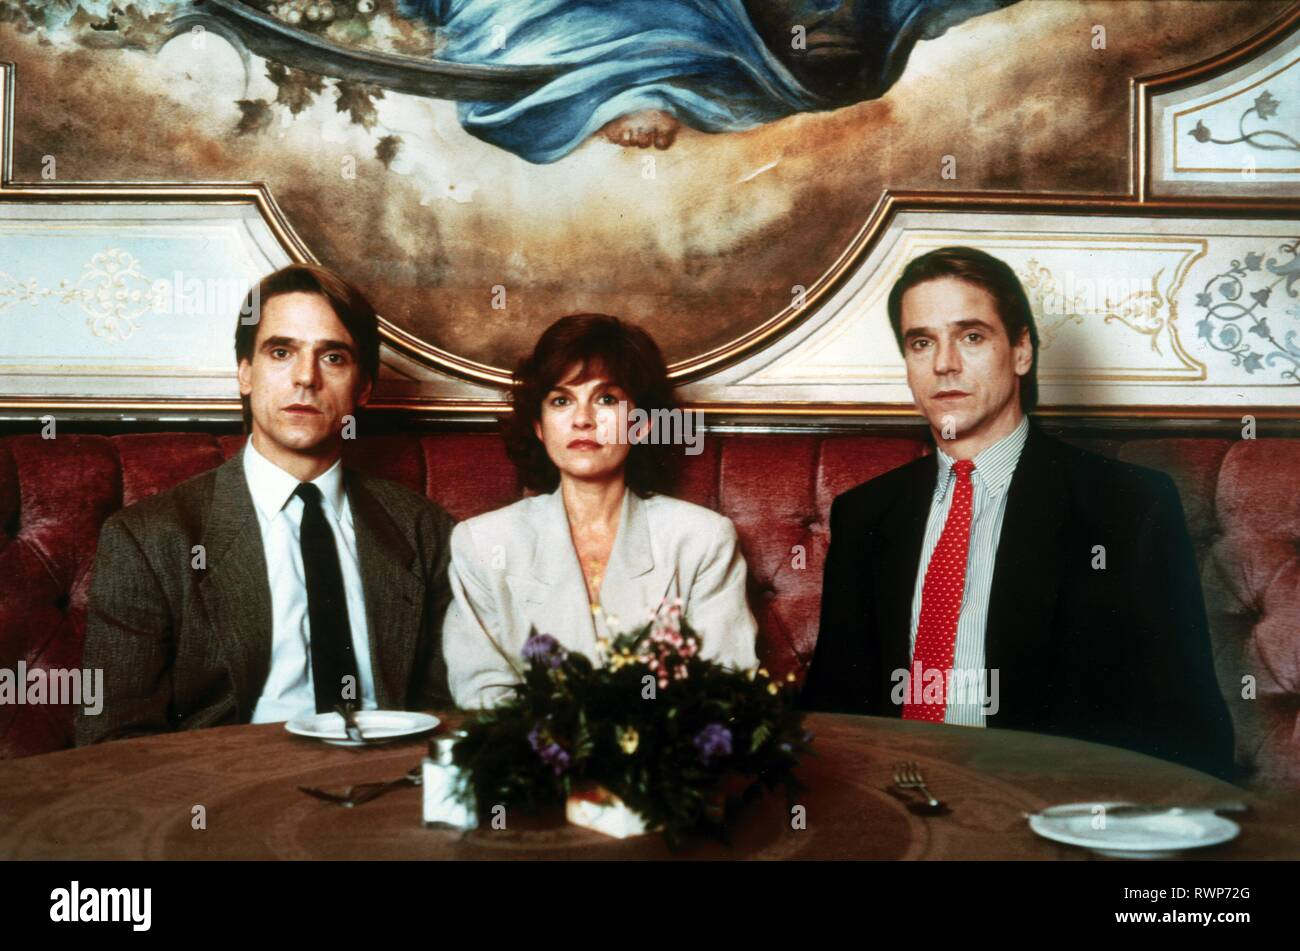 IRONS,BUJOLD,IRONS, DEAD RINGERS, 1988 Stock Photo